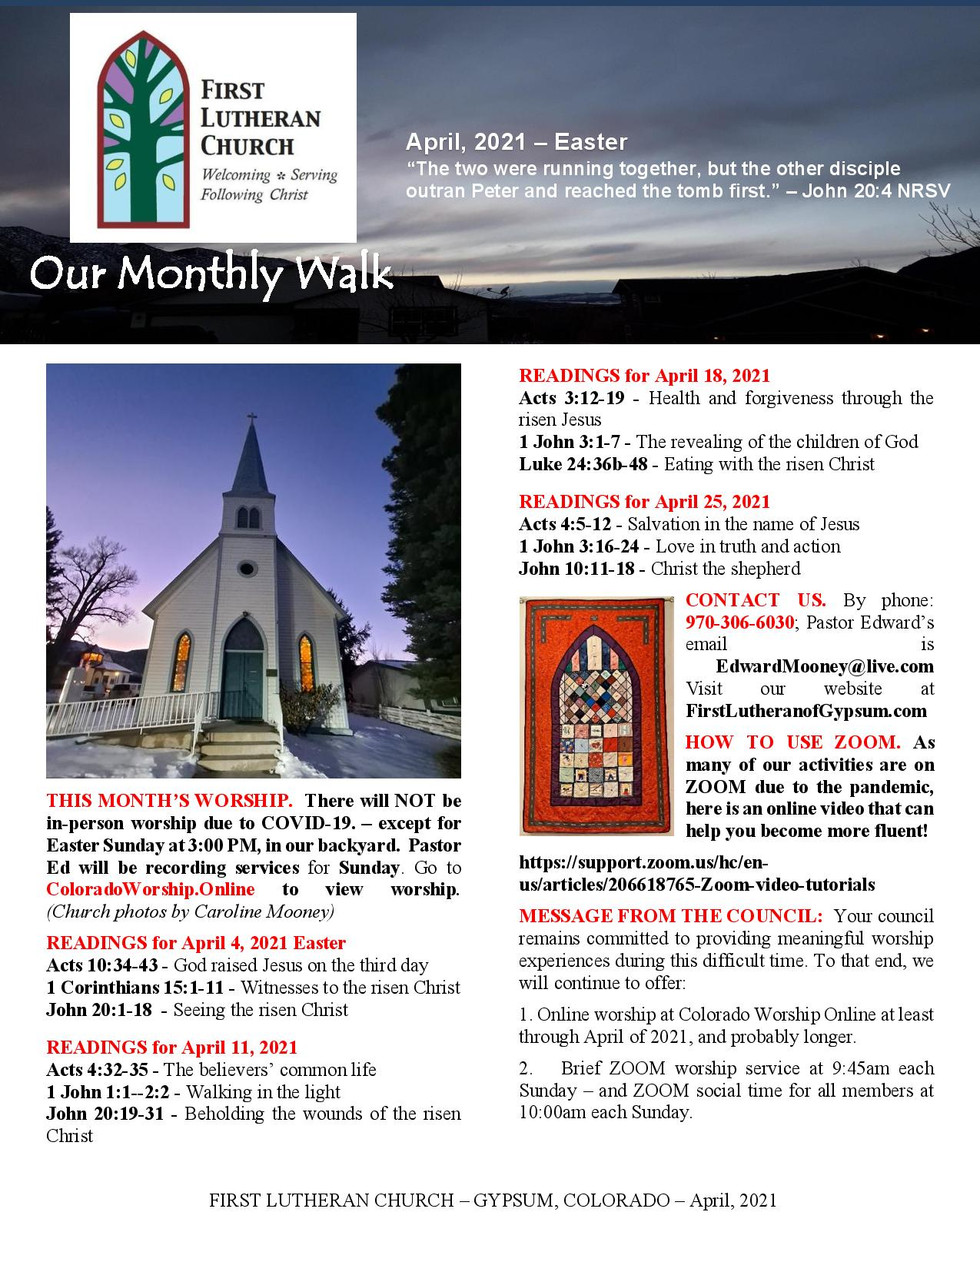 Newsletter for April, 2021. Page 1